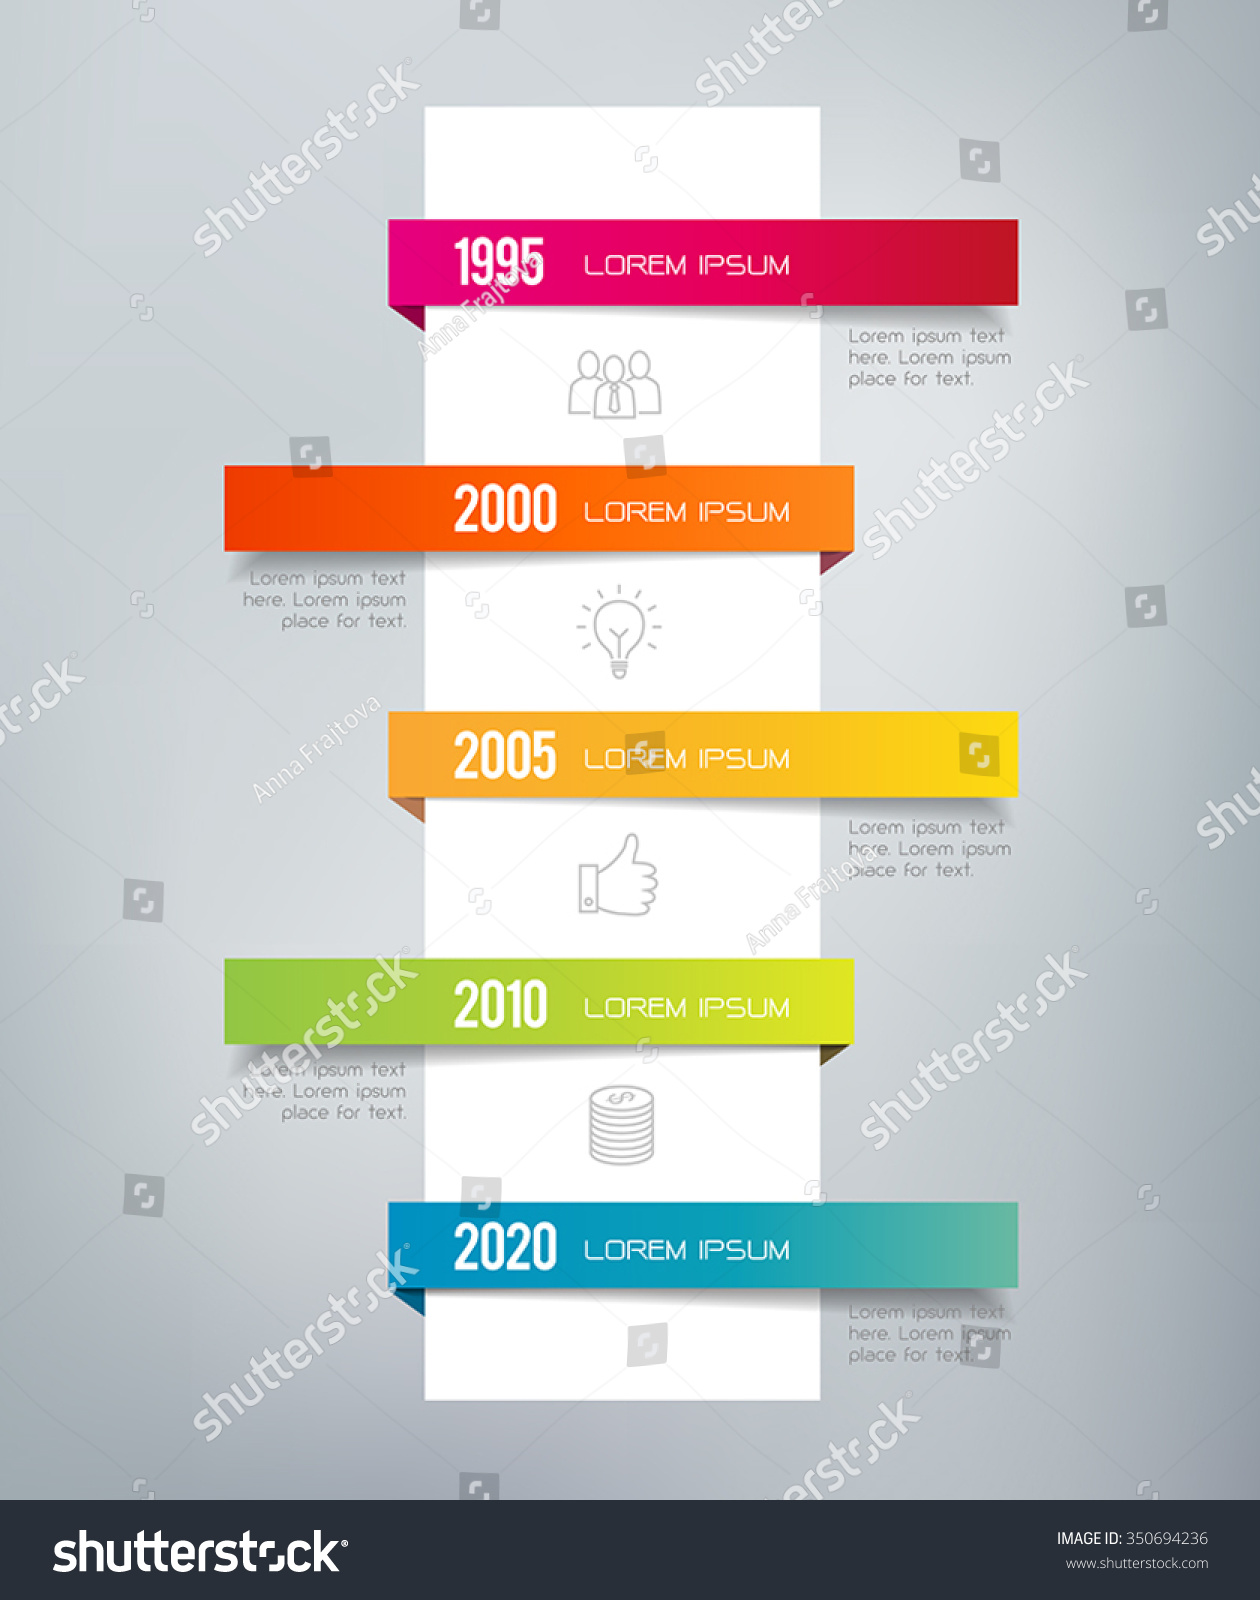 infographic timeline can illustrate strategy workflow